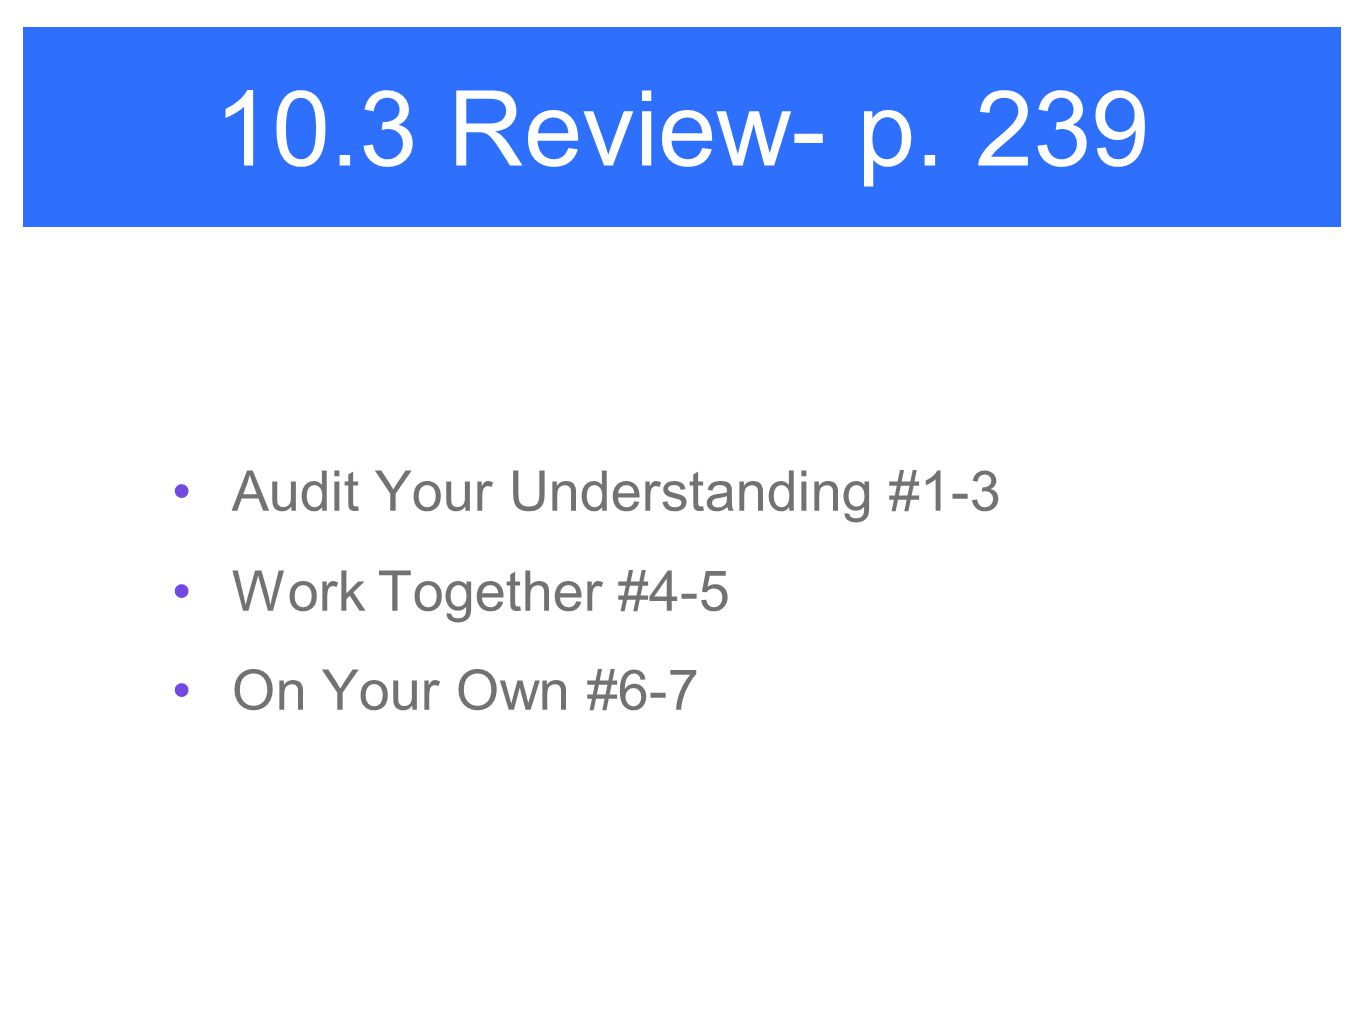 10.3 Review- p. 239 Audit Your Understanding #1-3 Work Together #4-5